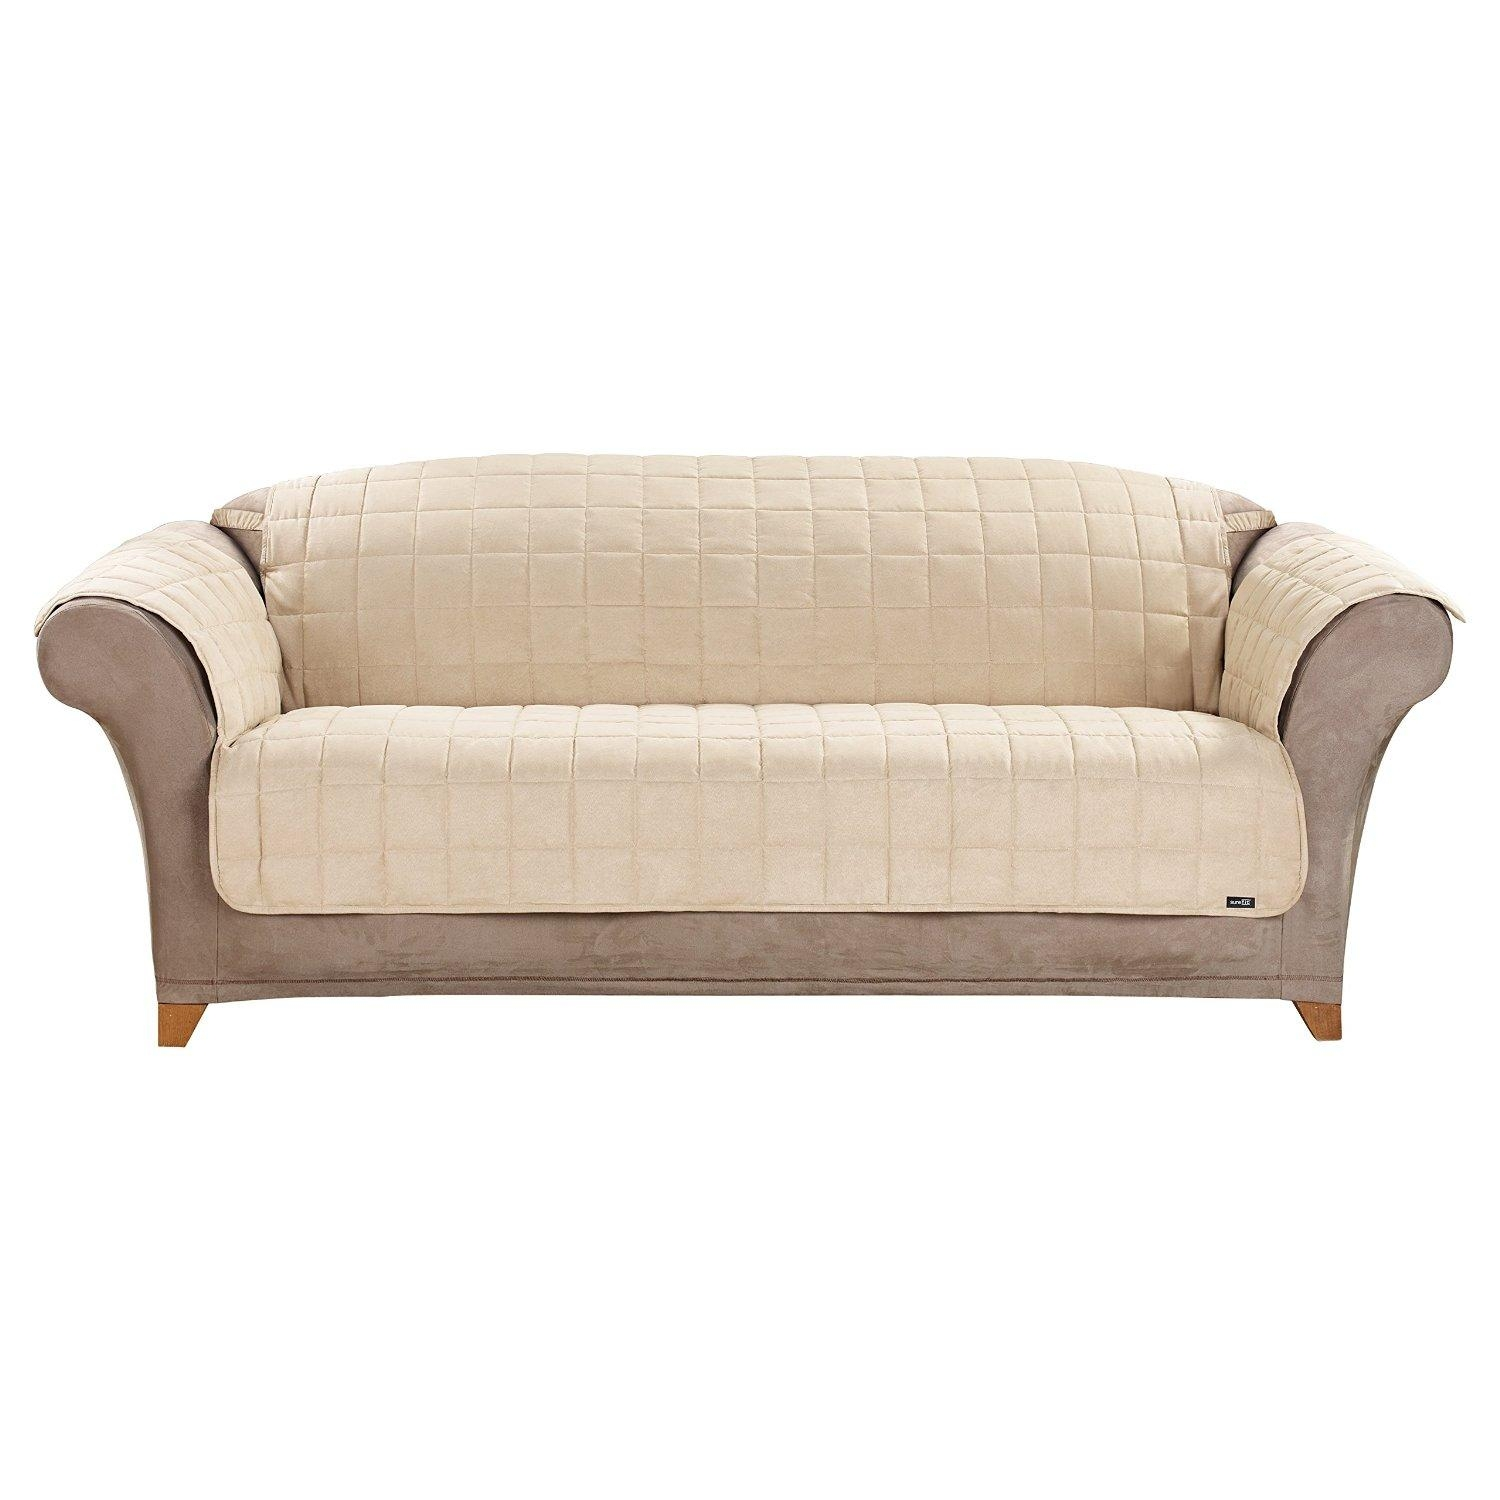 Furniture & Sofa: Stunning Sure Fit Sofa Covers Design For Inside Armless Sofa Slipcovers (View 15 of 20)